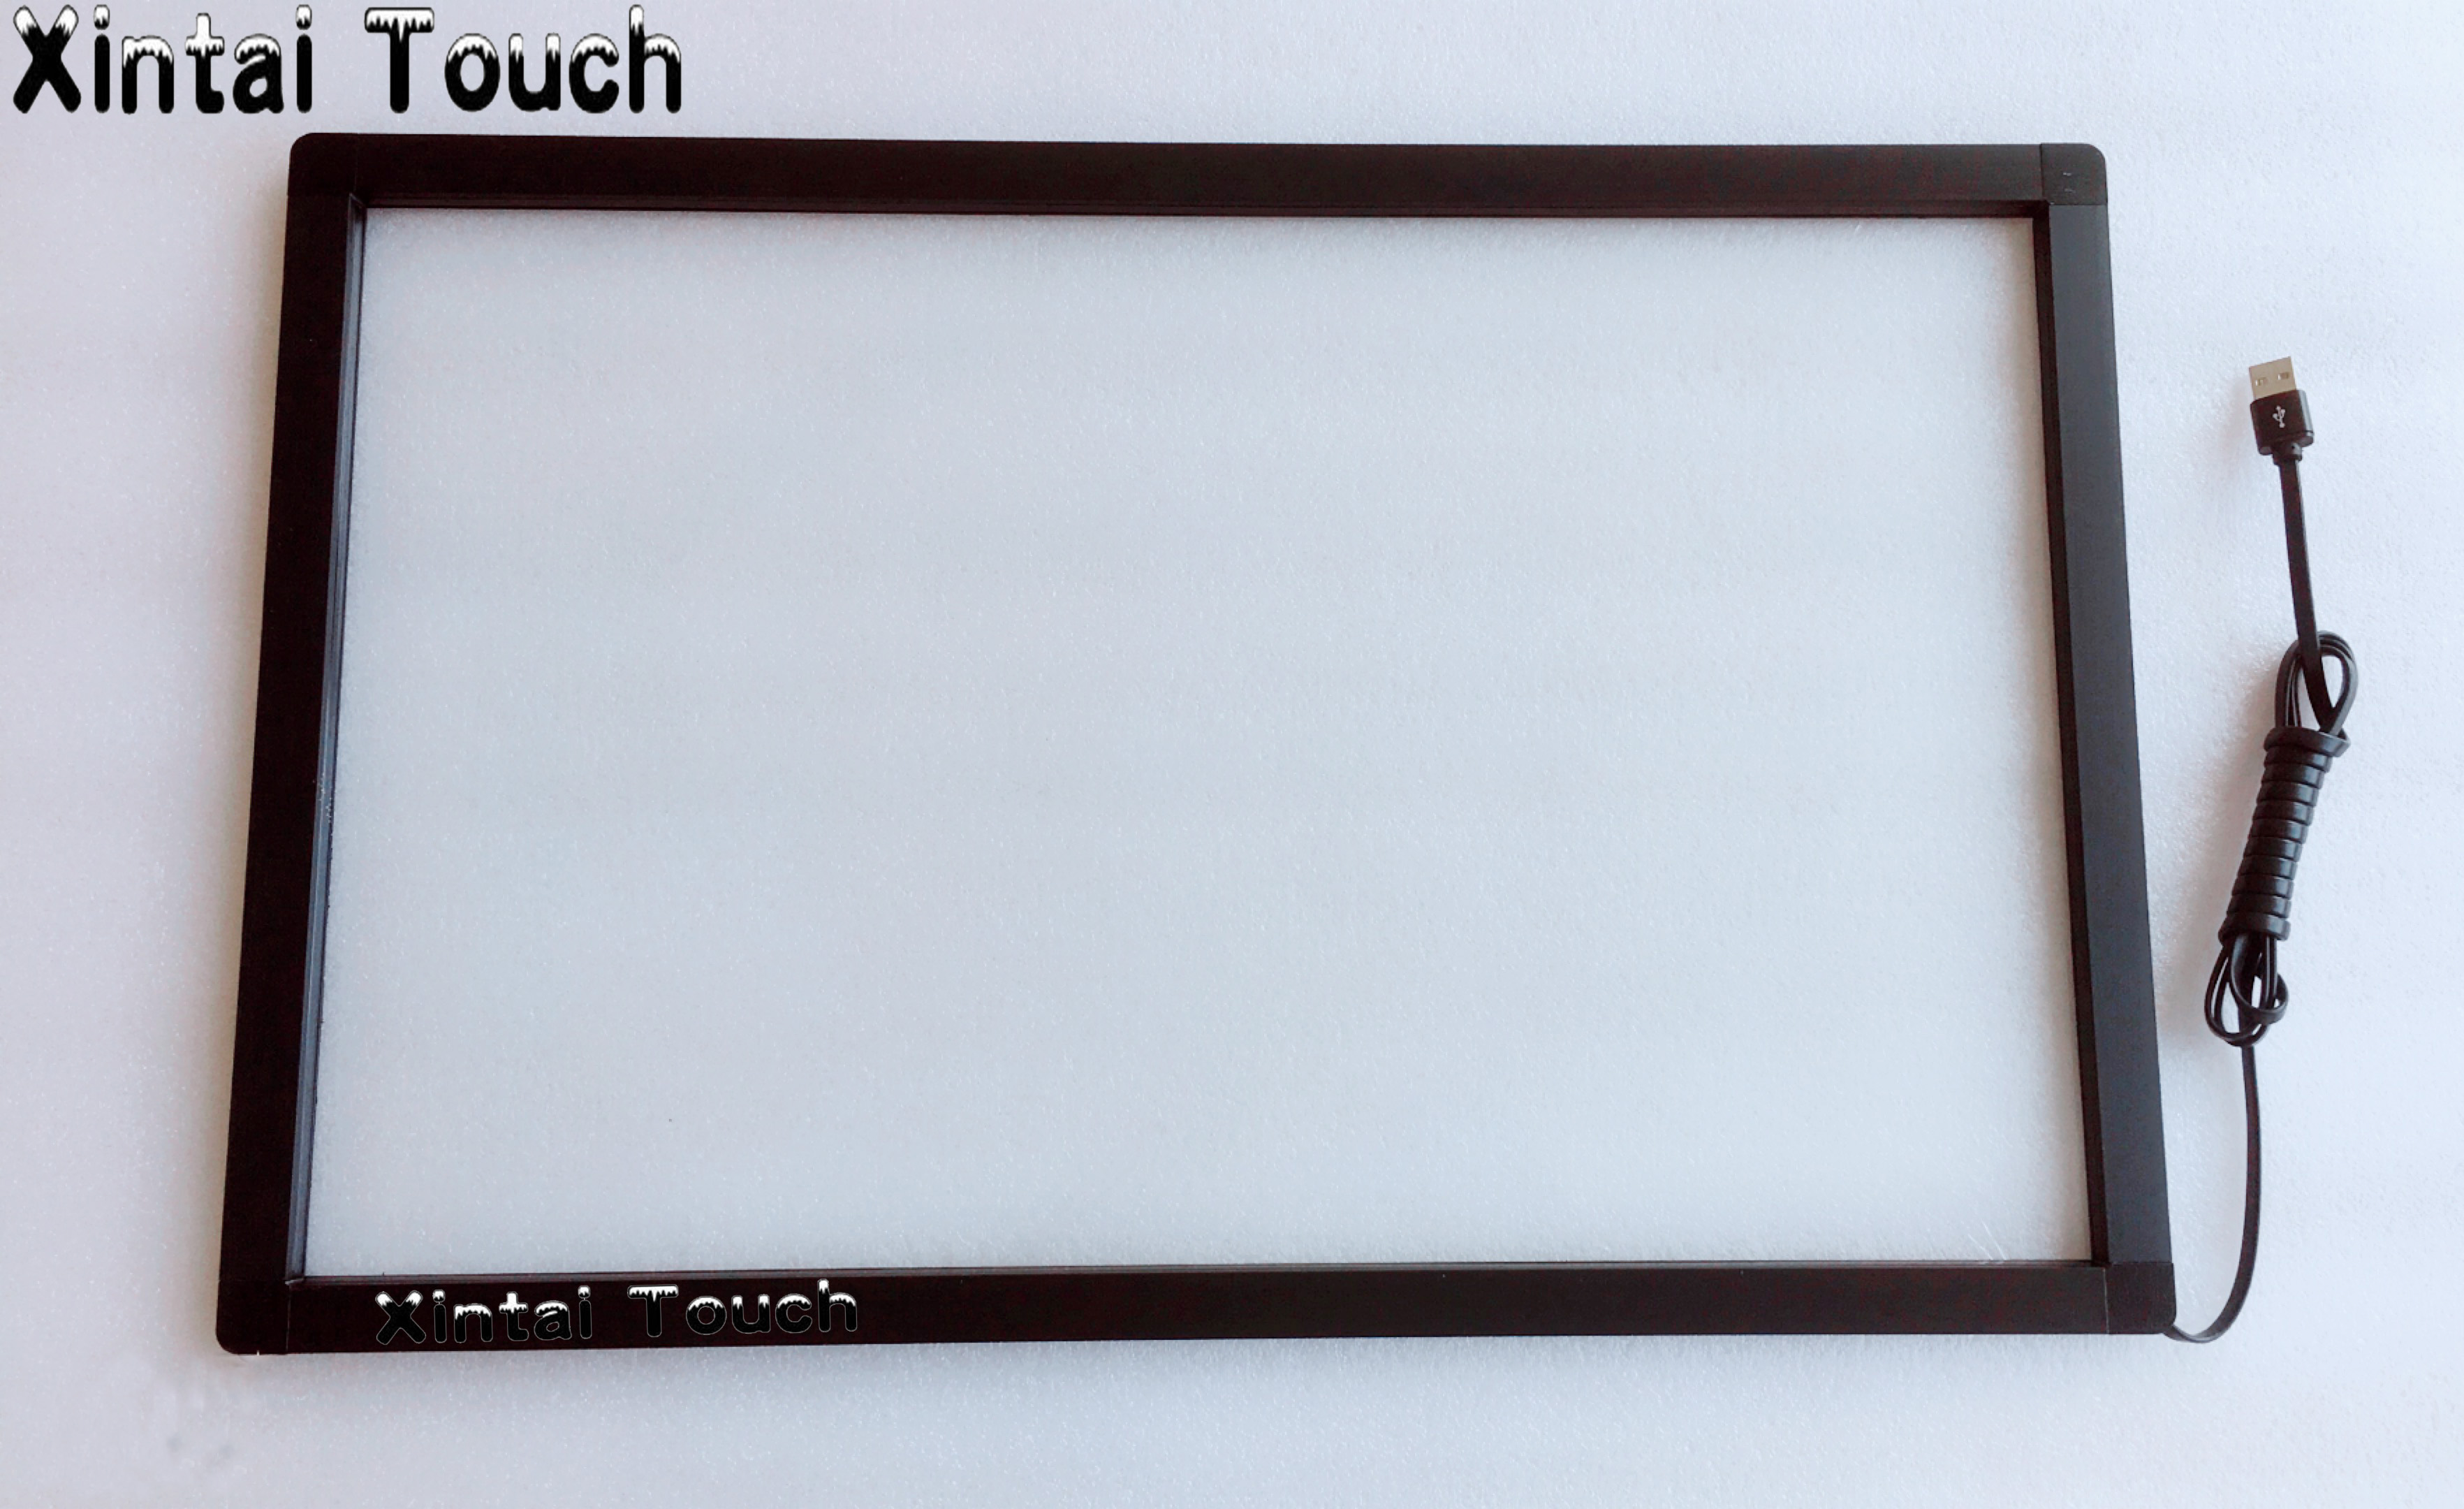 24 inch 2 points Stable Multi IR touch screen overlay kit for touch monitor/kiosk/ interactive display without glass